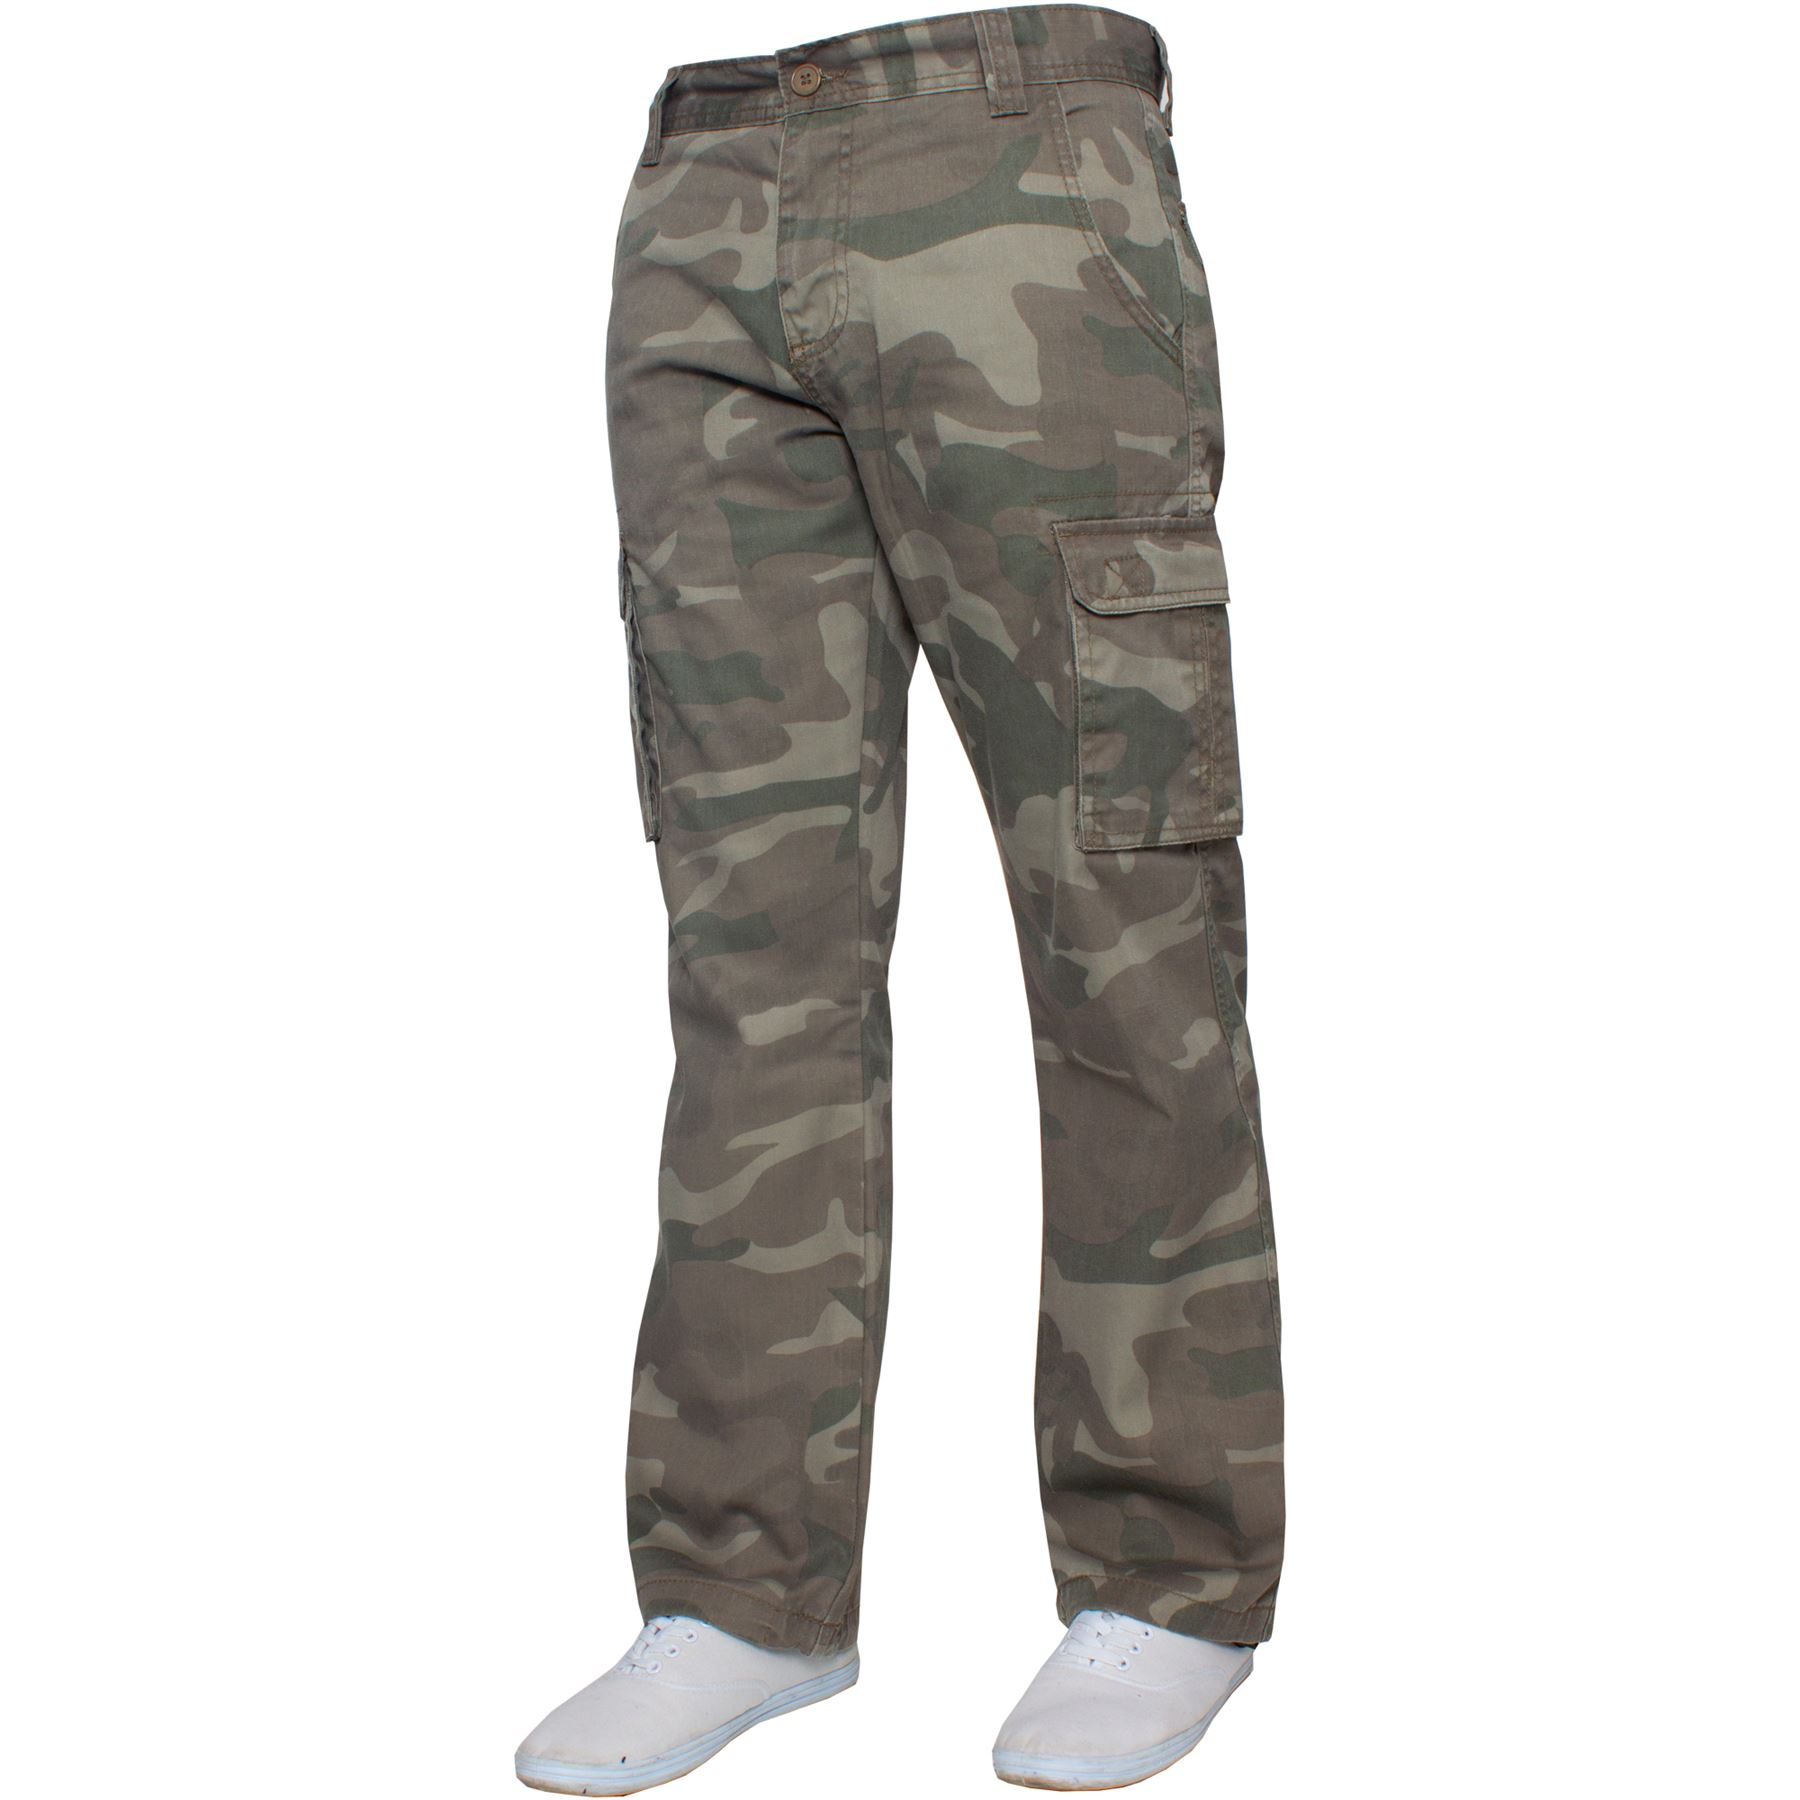 Kruze-Mens-Military-Combat-Trousers-Camouflage-Cargo-Camo-Army-Casual-Work-Pants thumbnail 25